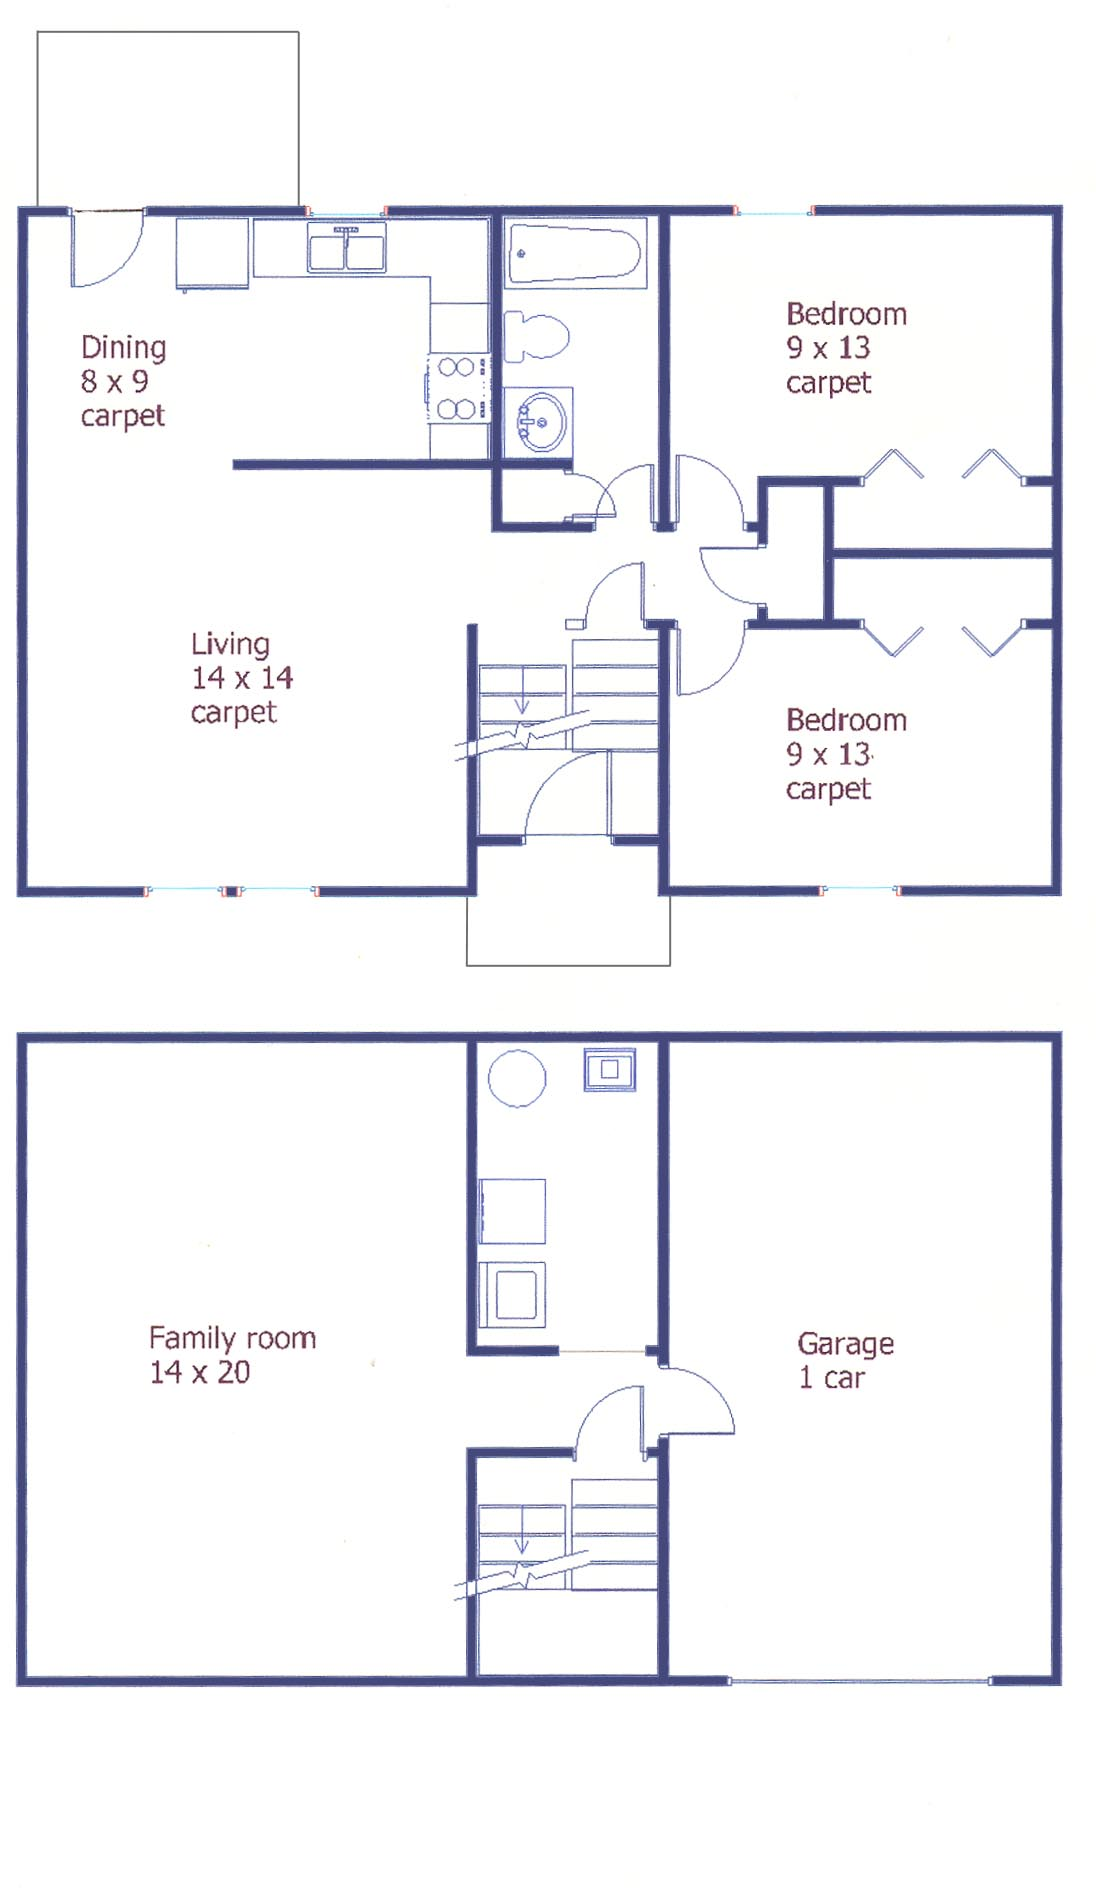 2480 Buchenhorst Road Floor Plan